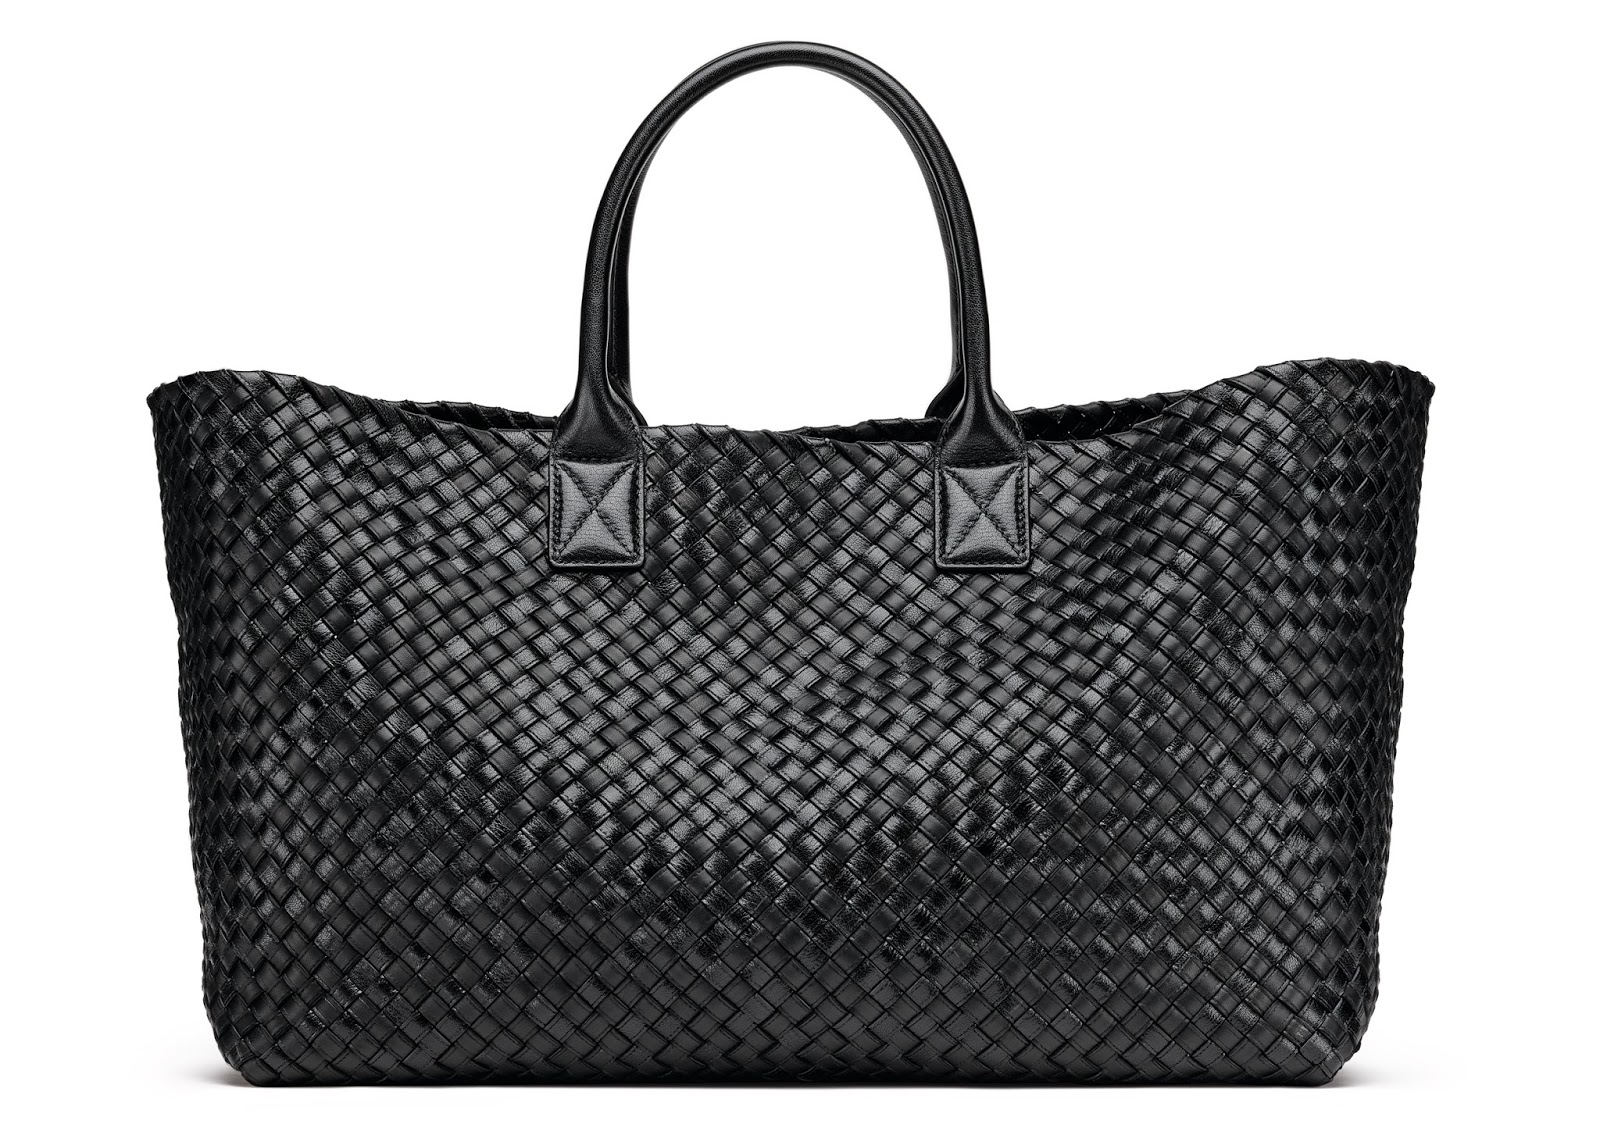 """b8feec206b4 The Cabat by Bottega Veneta  It takes a courageous warrior to slay a  ferocious beast. In the same manner, it takes a skilful and experienced  craftsman to """" ..."""